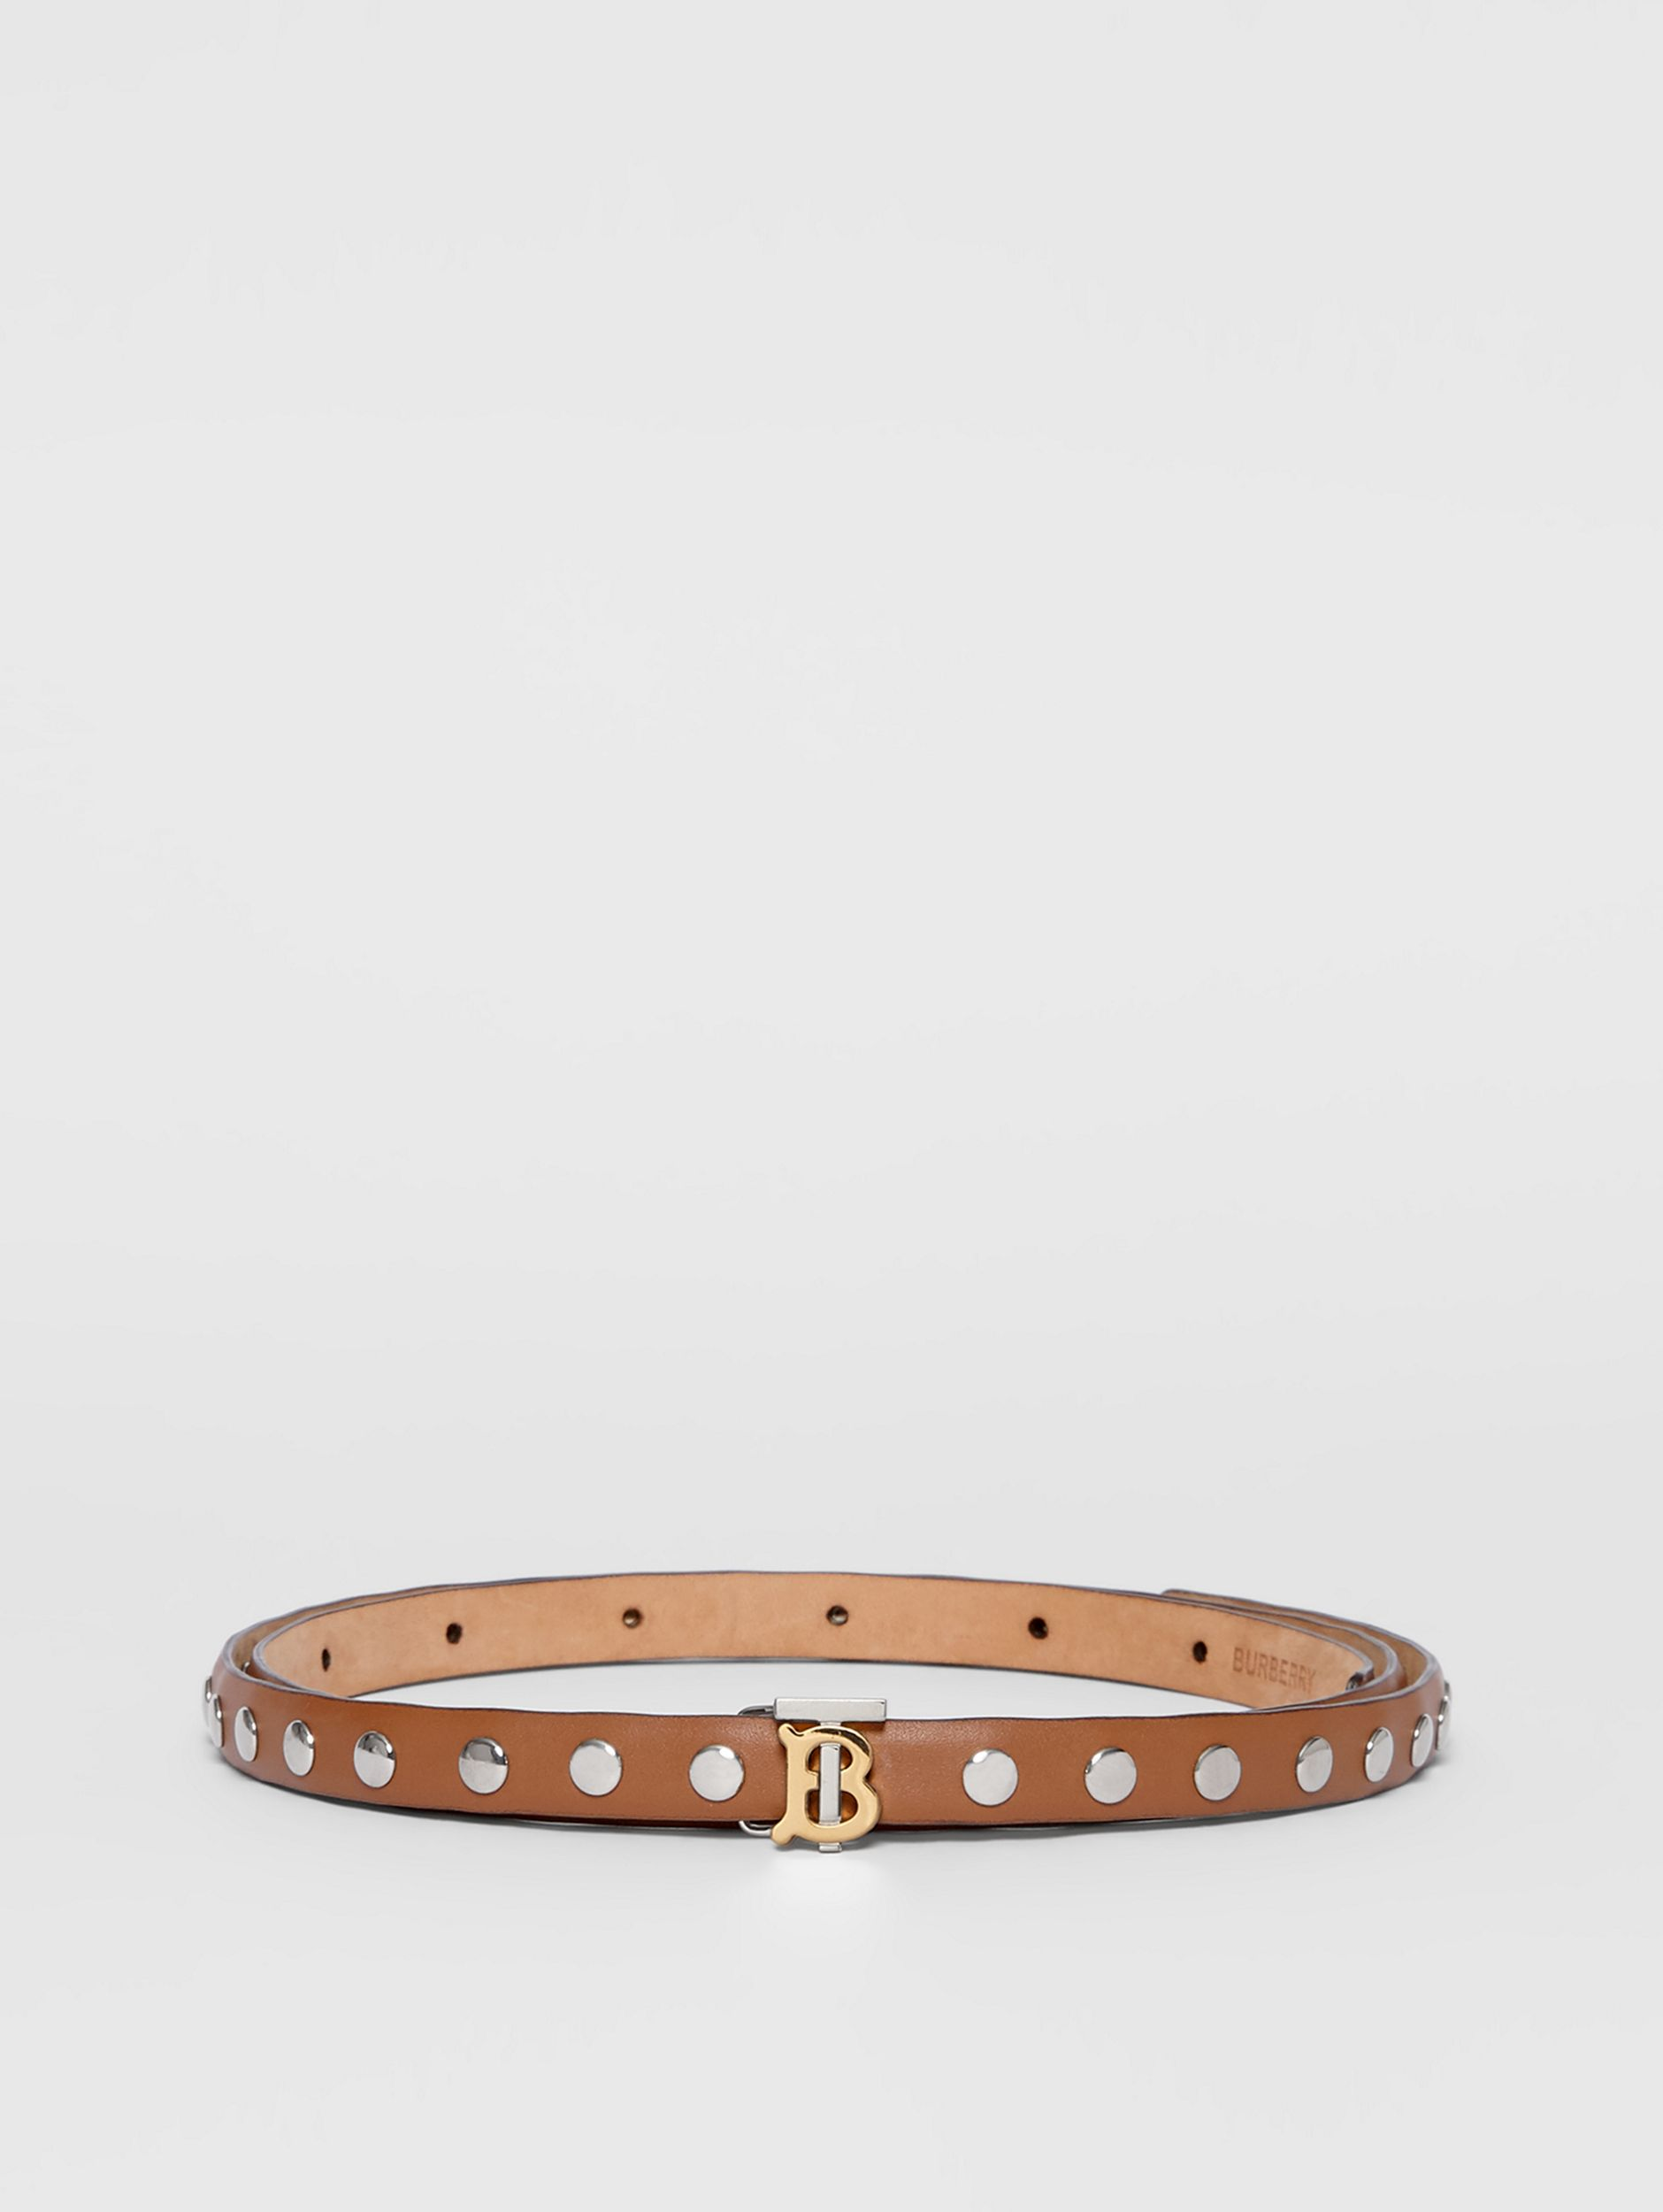 Monogram Motif Studded Leather Belt in Malt Brown/palladio - Women | Burberry - 4